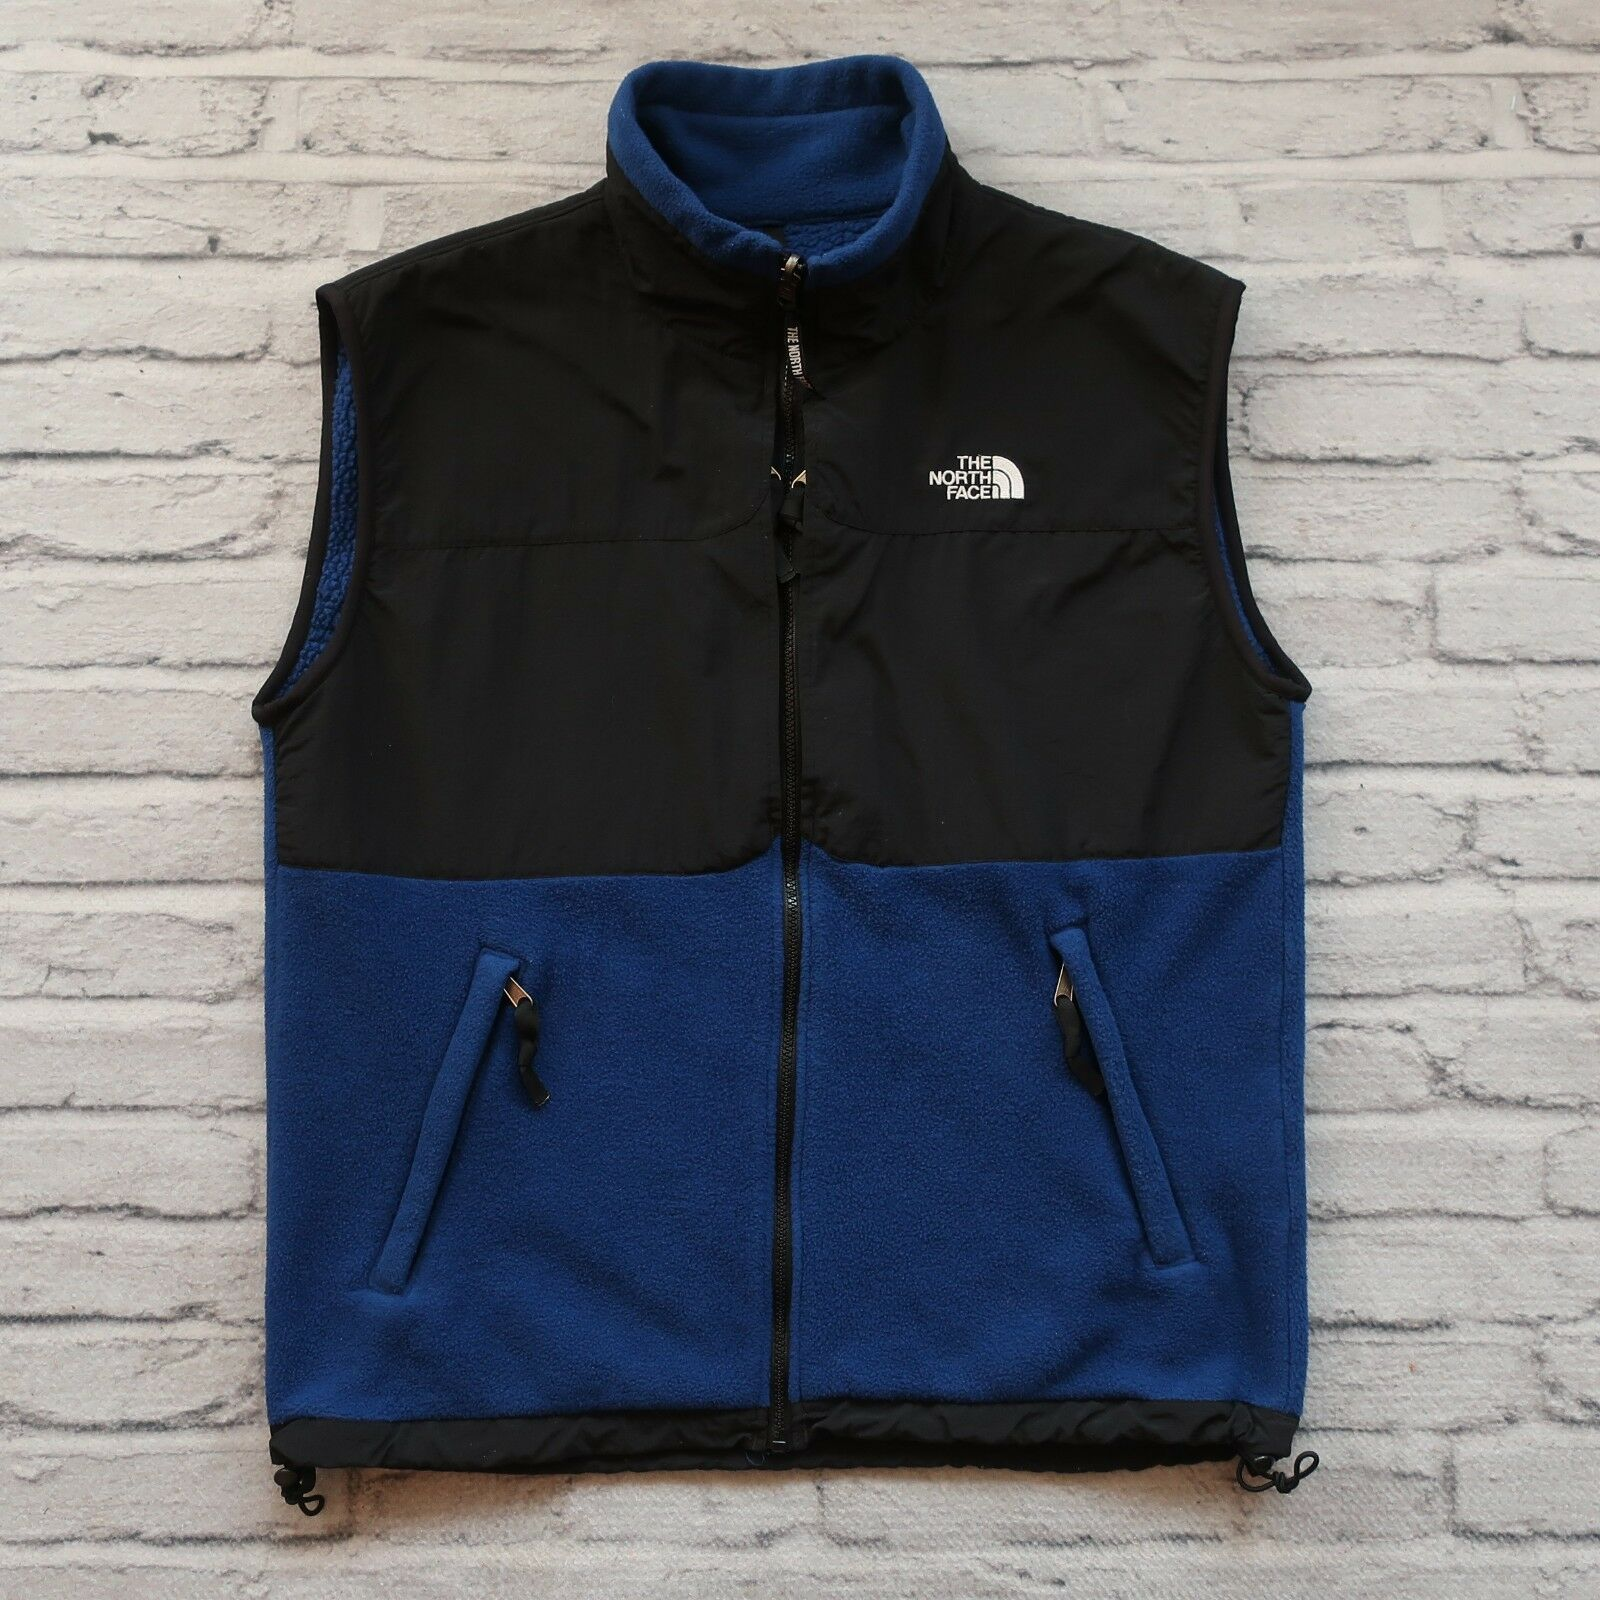 Vintage 90s North Face Polar Fleece Vest Size L